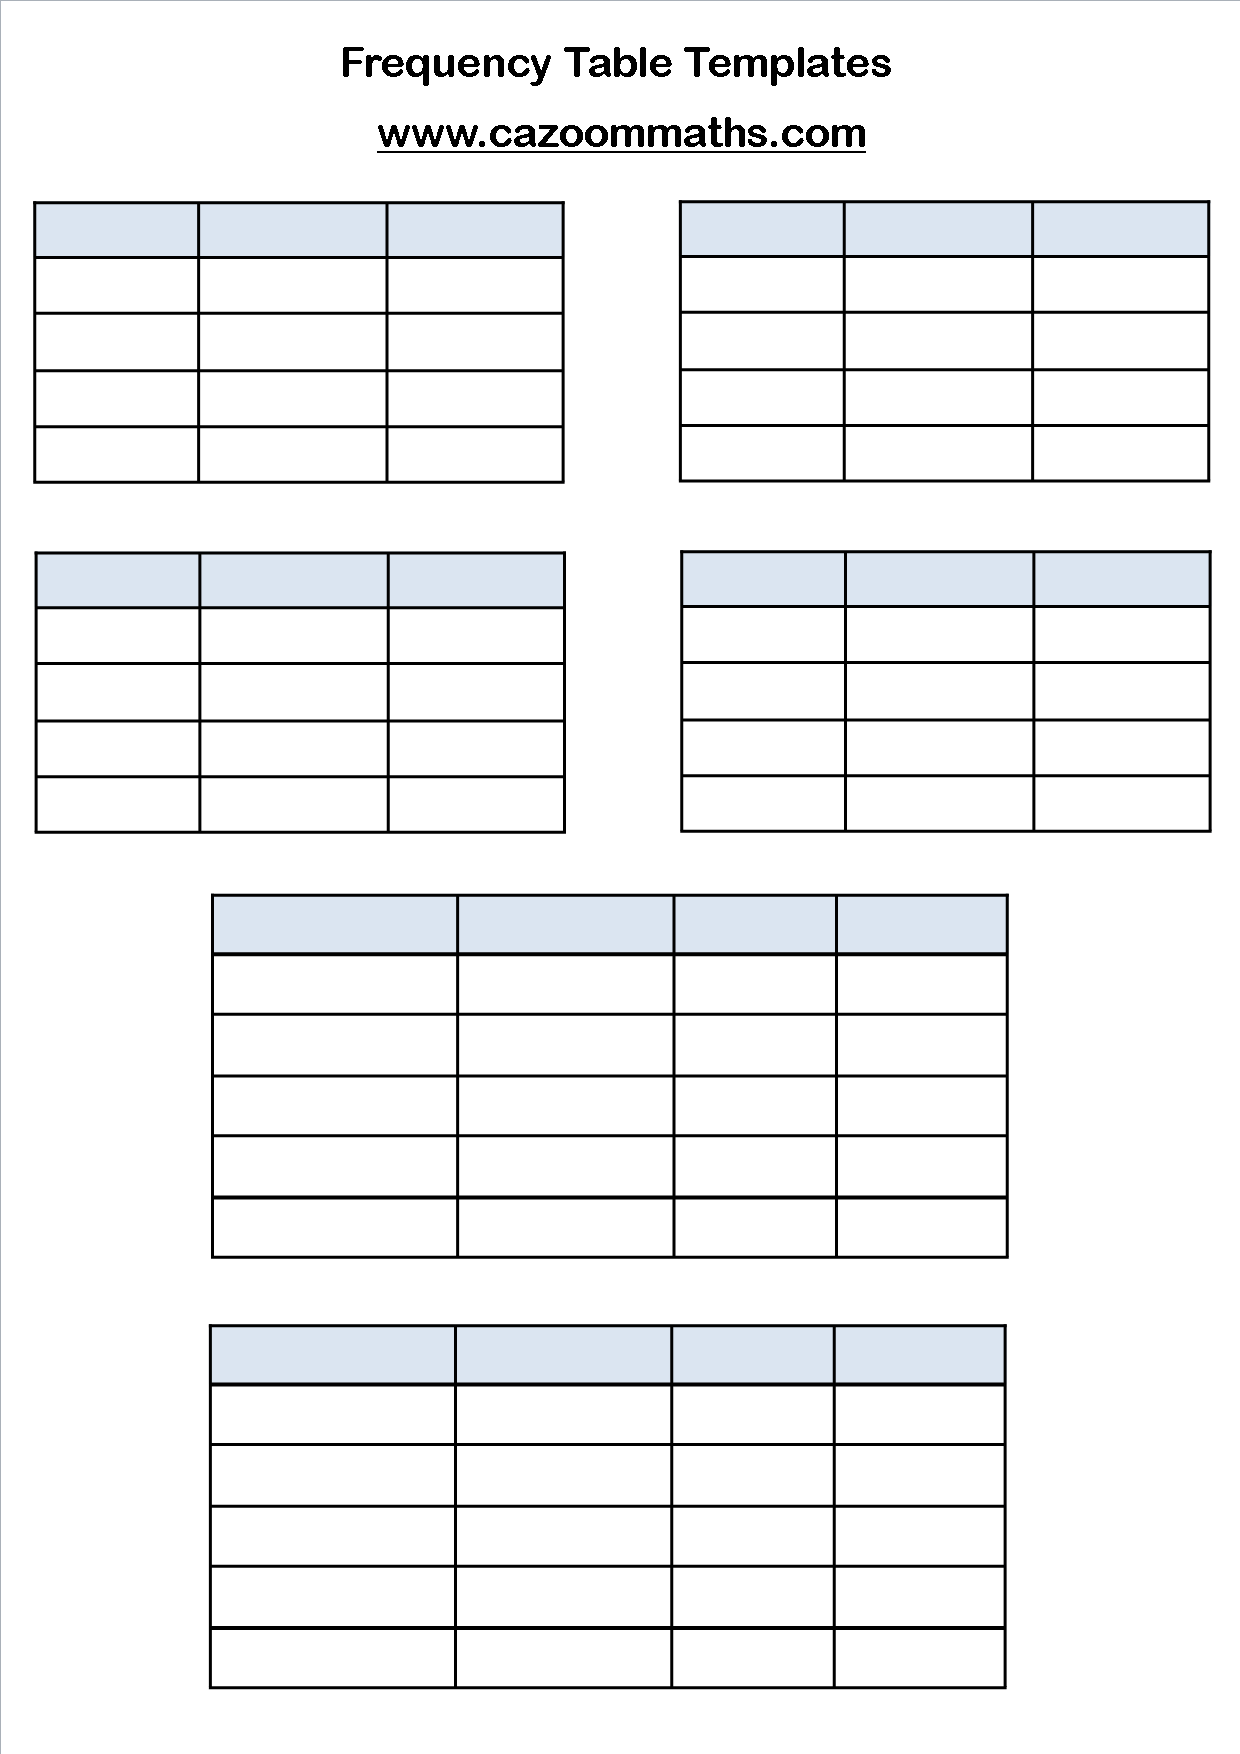 Frequency Table Templates – Ratio Table Worksheet